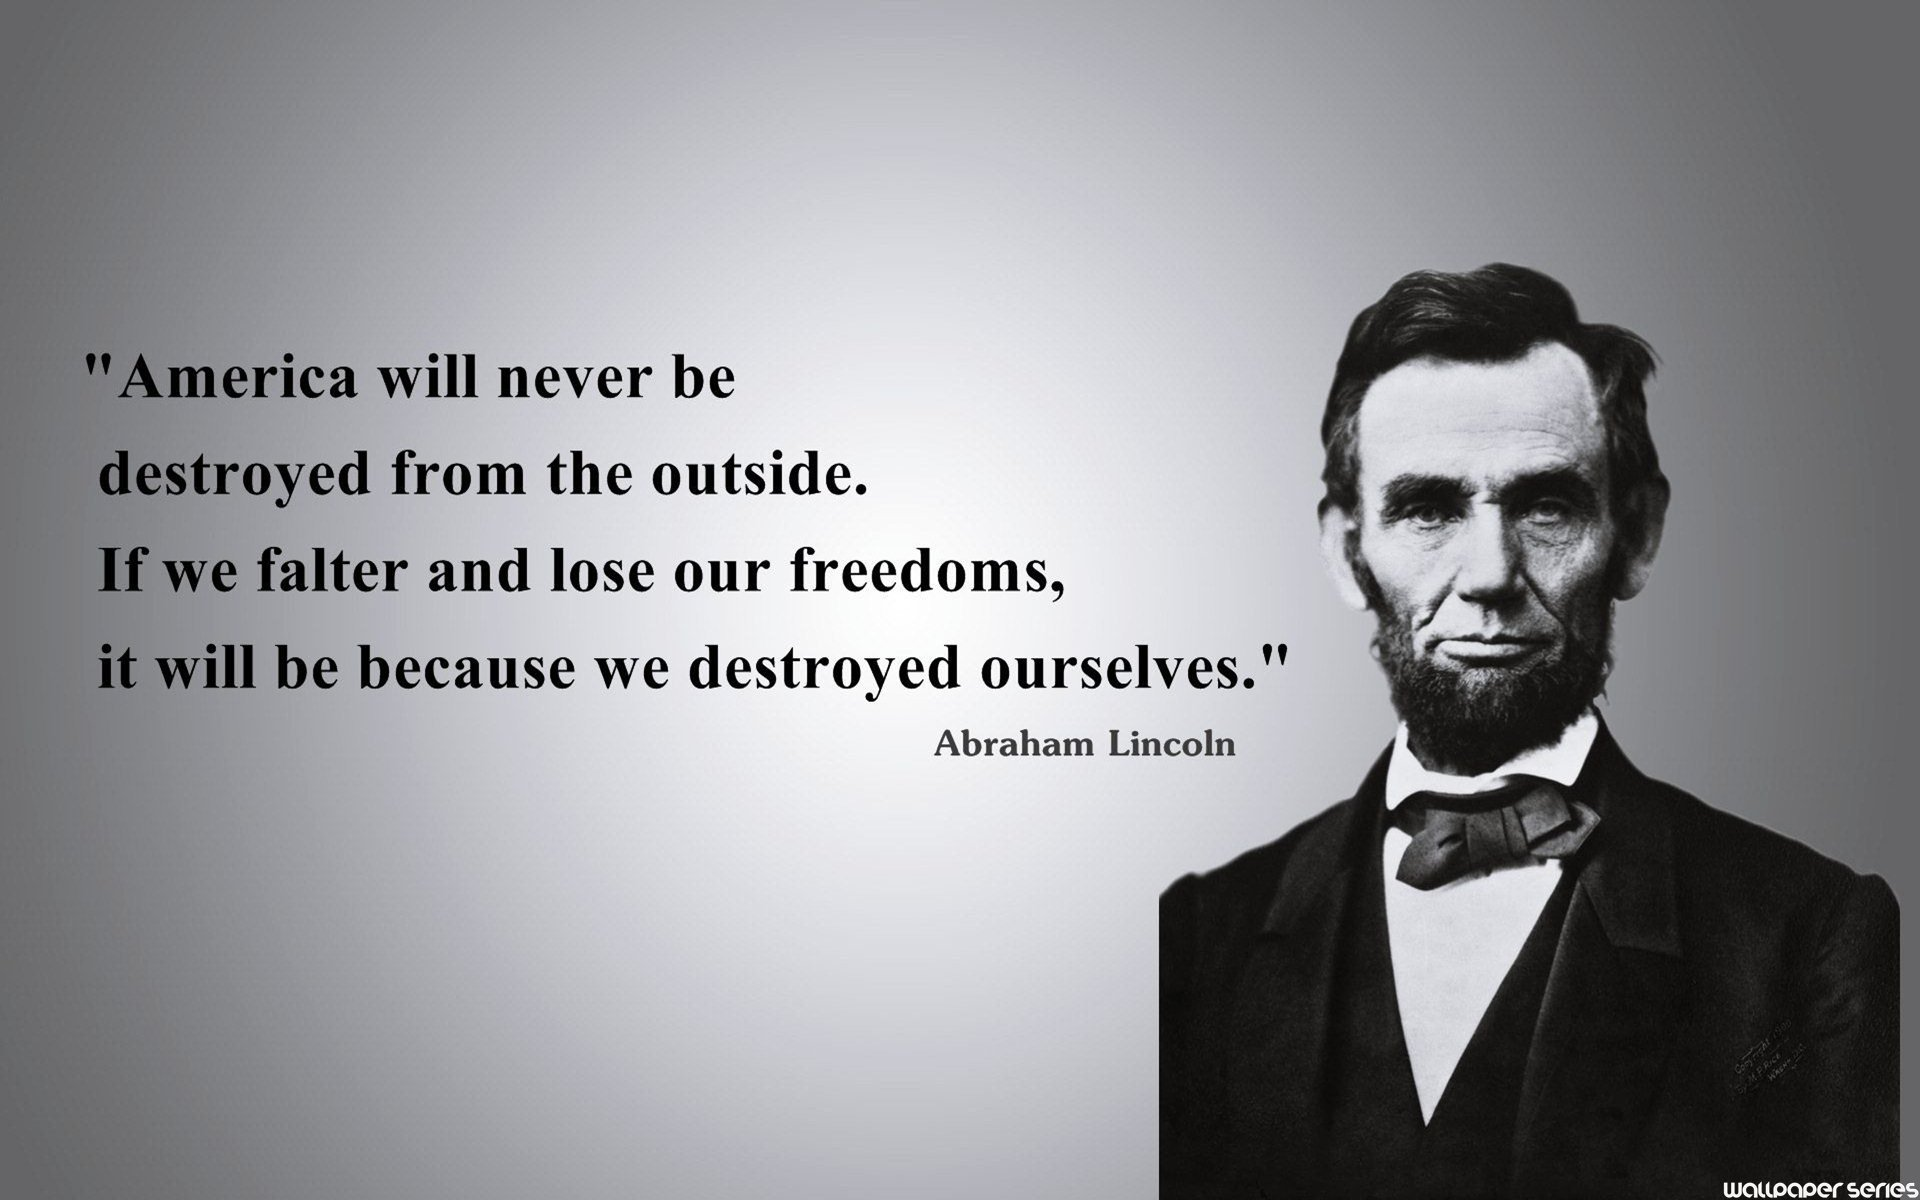 Malcolm X Wallpaper Quotes Quotes About Freedom Abraham Lincoln 26 Quotes